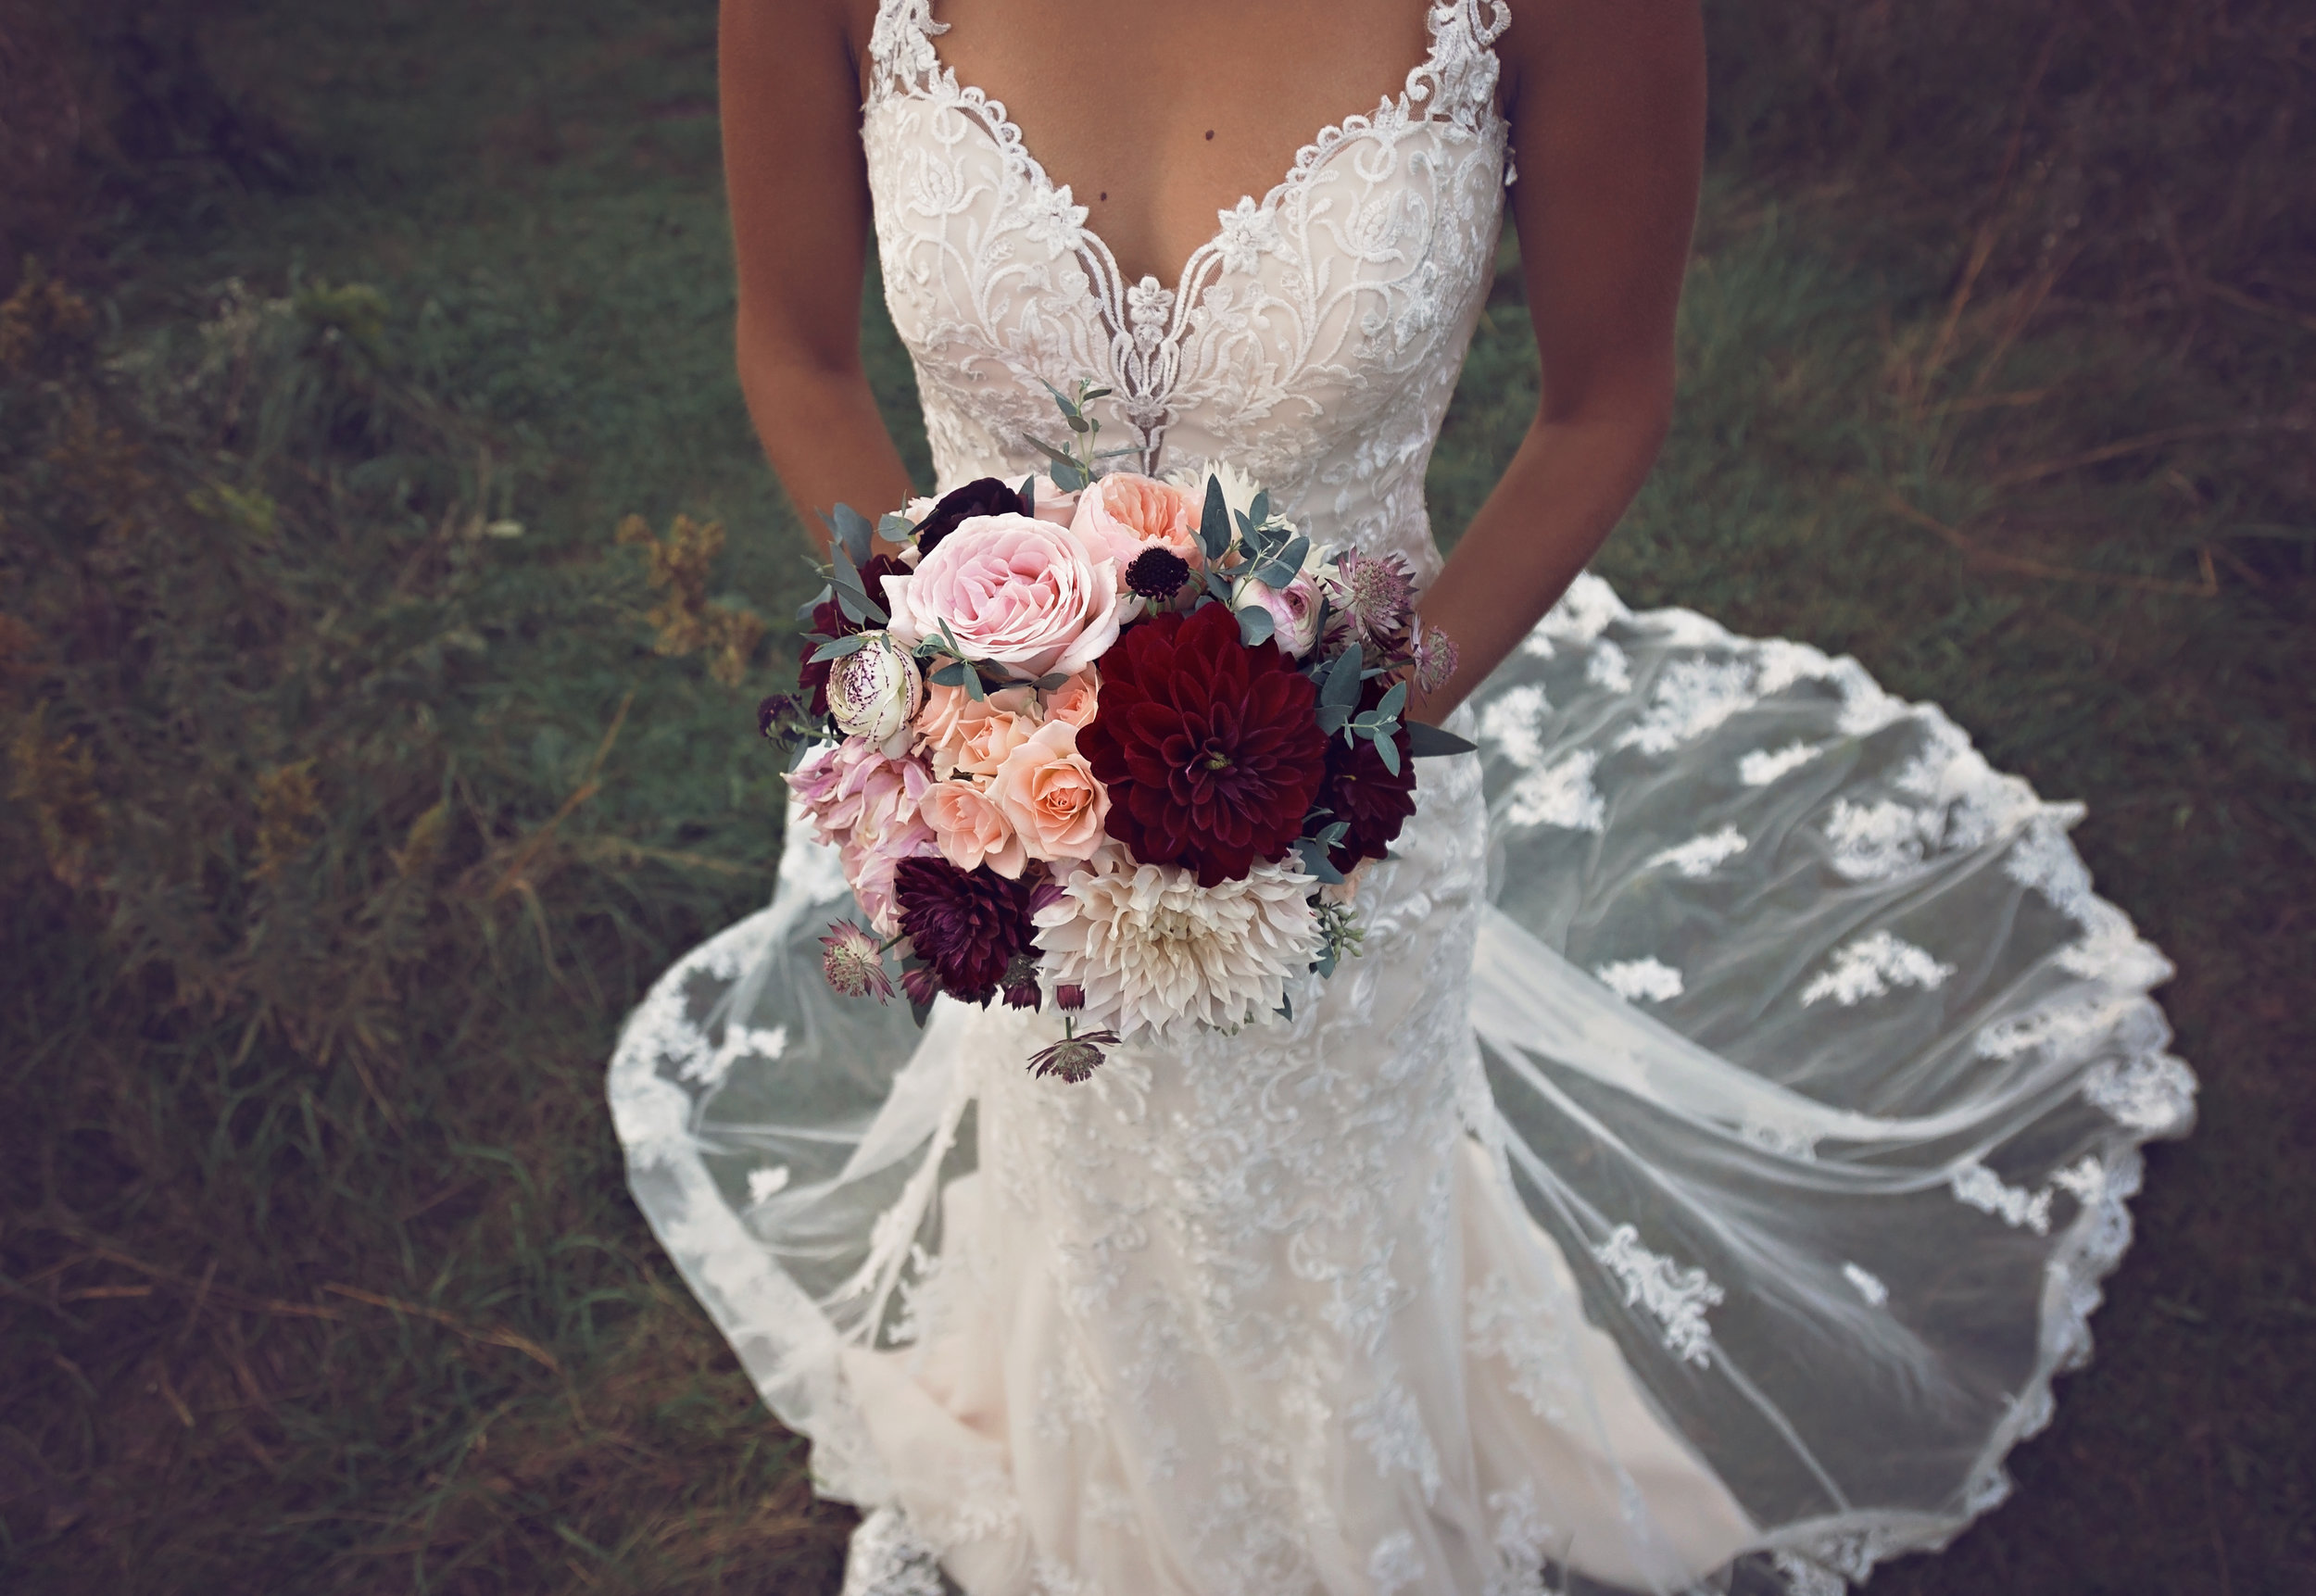 MINNESOTA WEDDING PHOTOGRAPHER   BLOOMING CREATIONS    INSPIRE BRIDAL BOUTIQUE   INTUITION WEDDINGS BY ID PHOTOGRAPHY